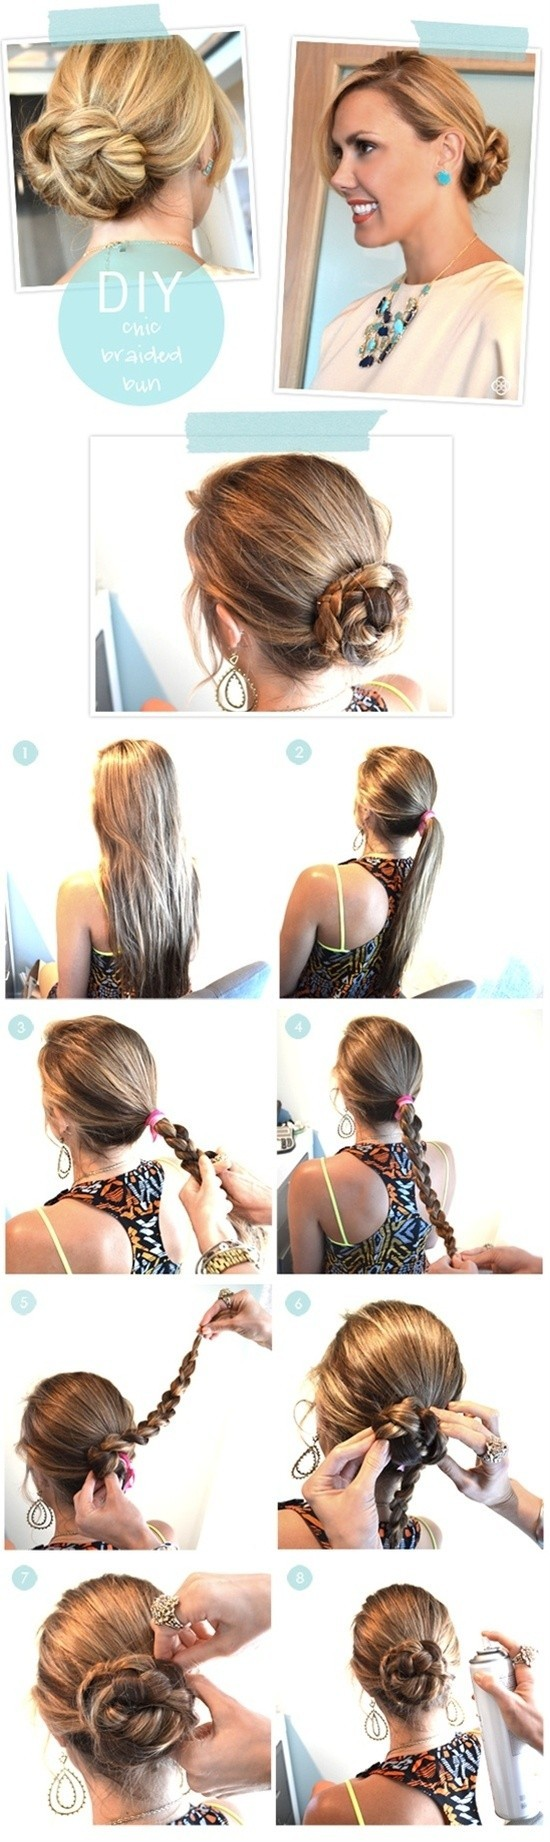 Magnificent Step By Step Hairstyles For Long Hair Long Hairstyles Ideas Hairstyle Inspiration Daily Dogsangcom